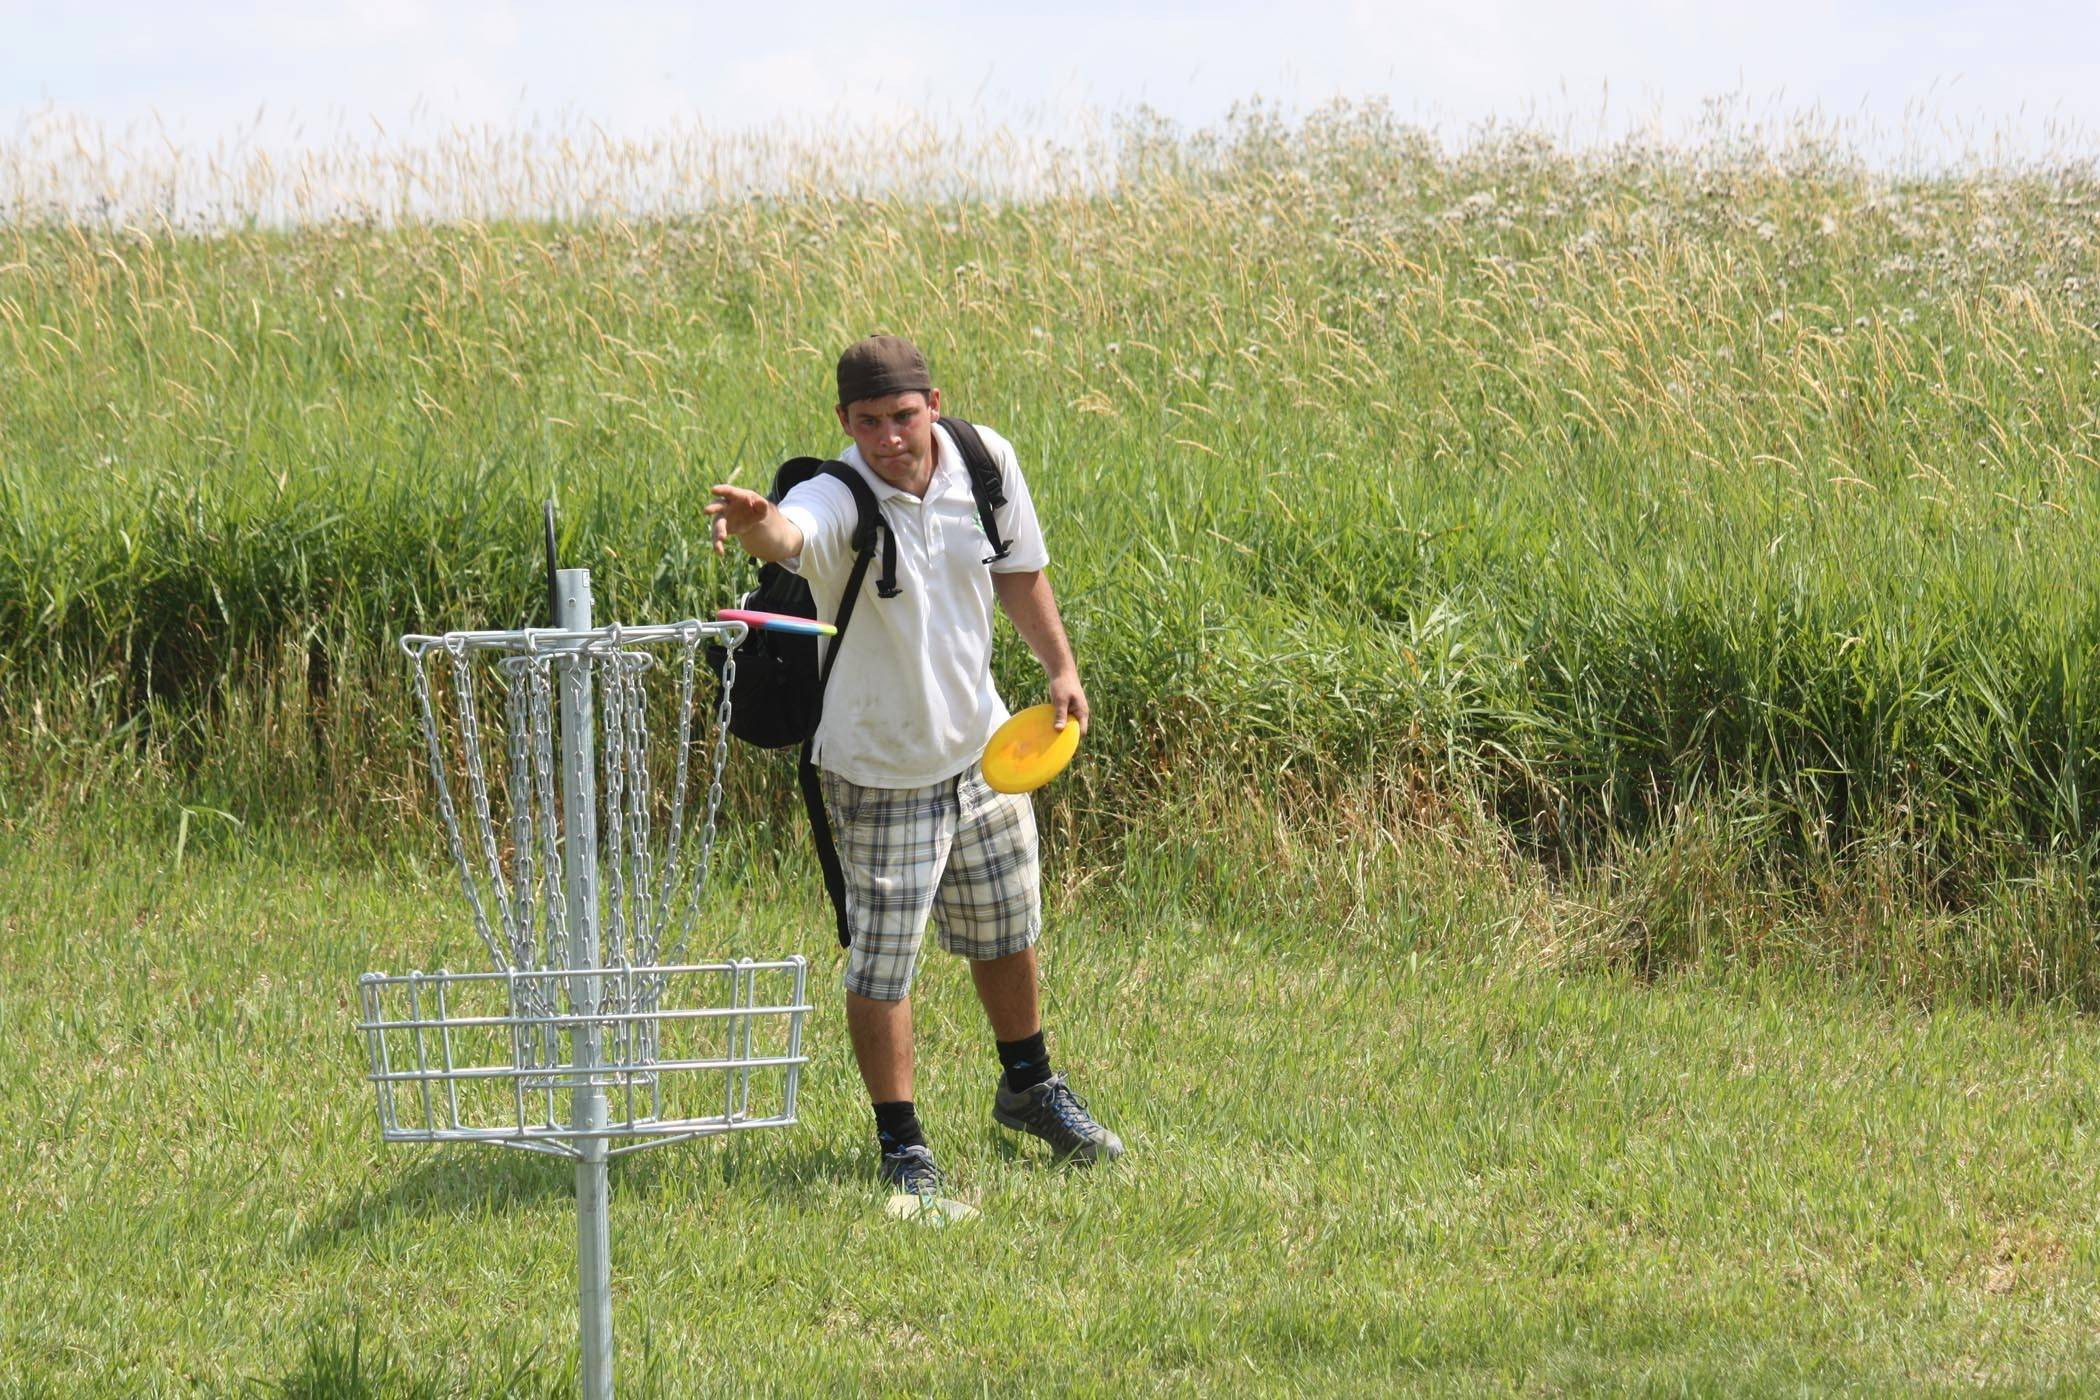 A disc golfer sizes up the basket during a previous Palatine Park District tournament. The park district, home to the 18 hole disc golf course at Margreth Riemer Reservoir, is hosting two disc golf events in June. Visit www.palatineparks.org for details.